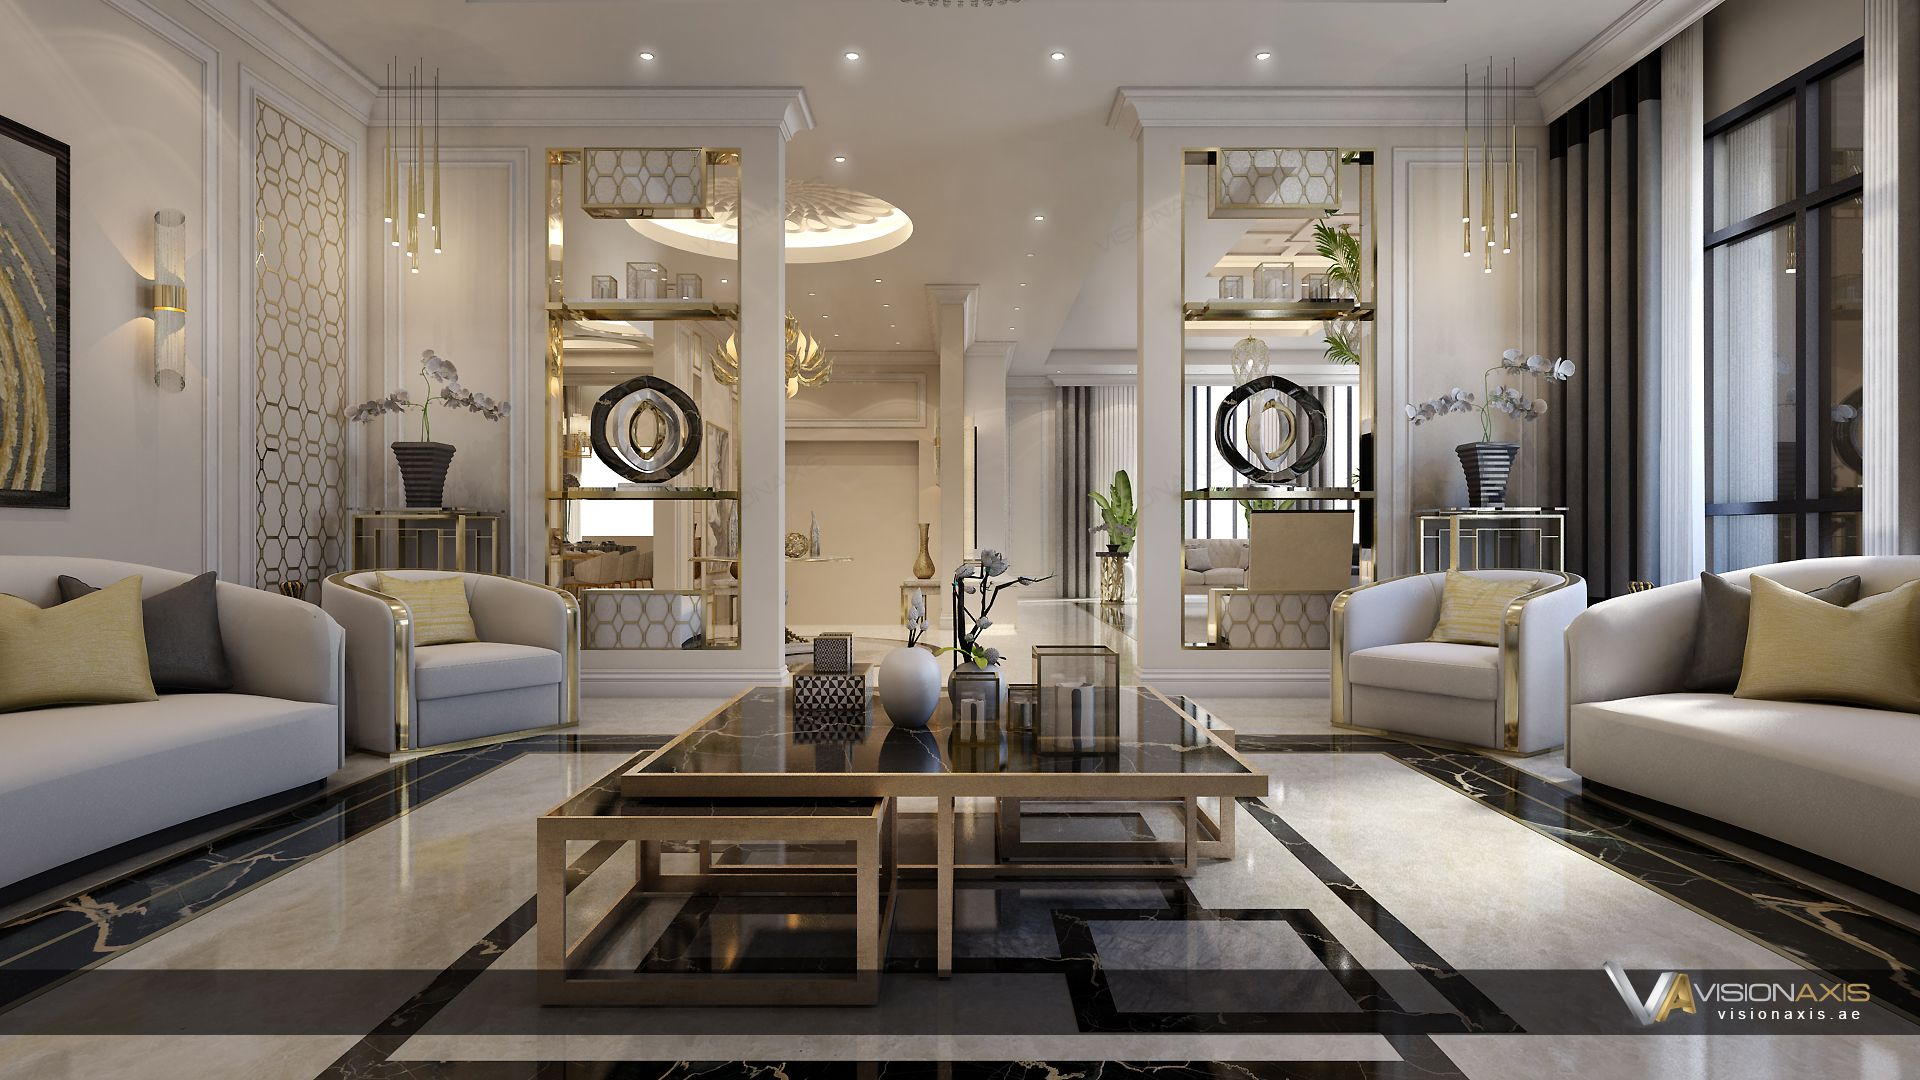 Neo Classic Design For Living Area By Visionaxis Interior Design Luxury Homes Dream Houses Design